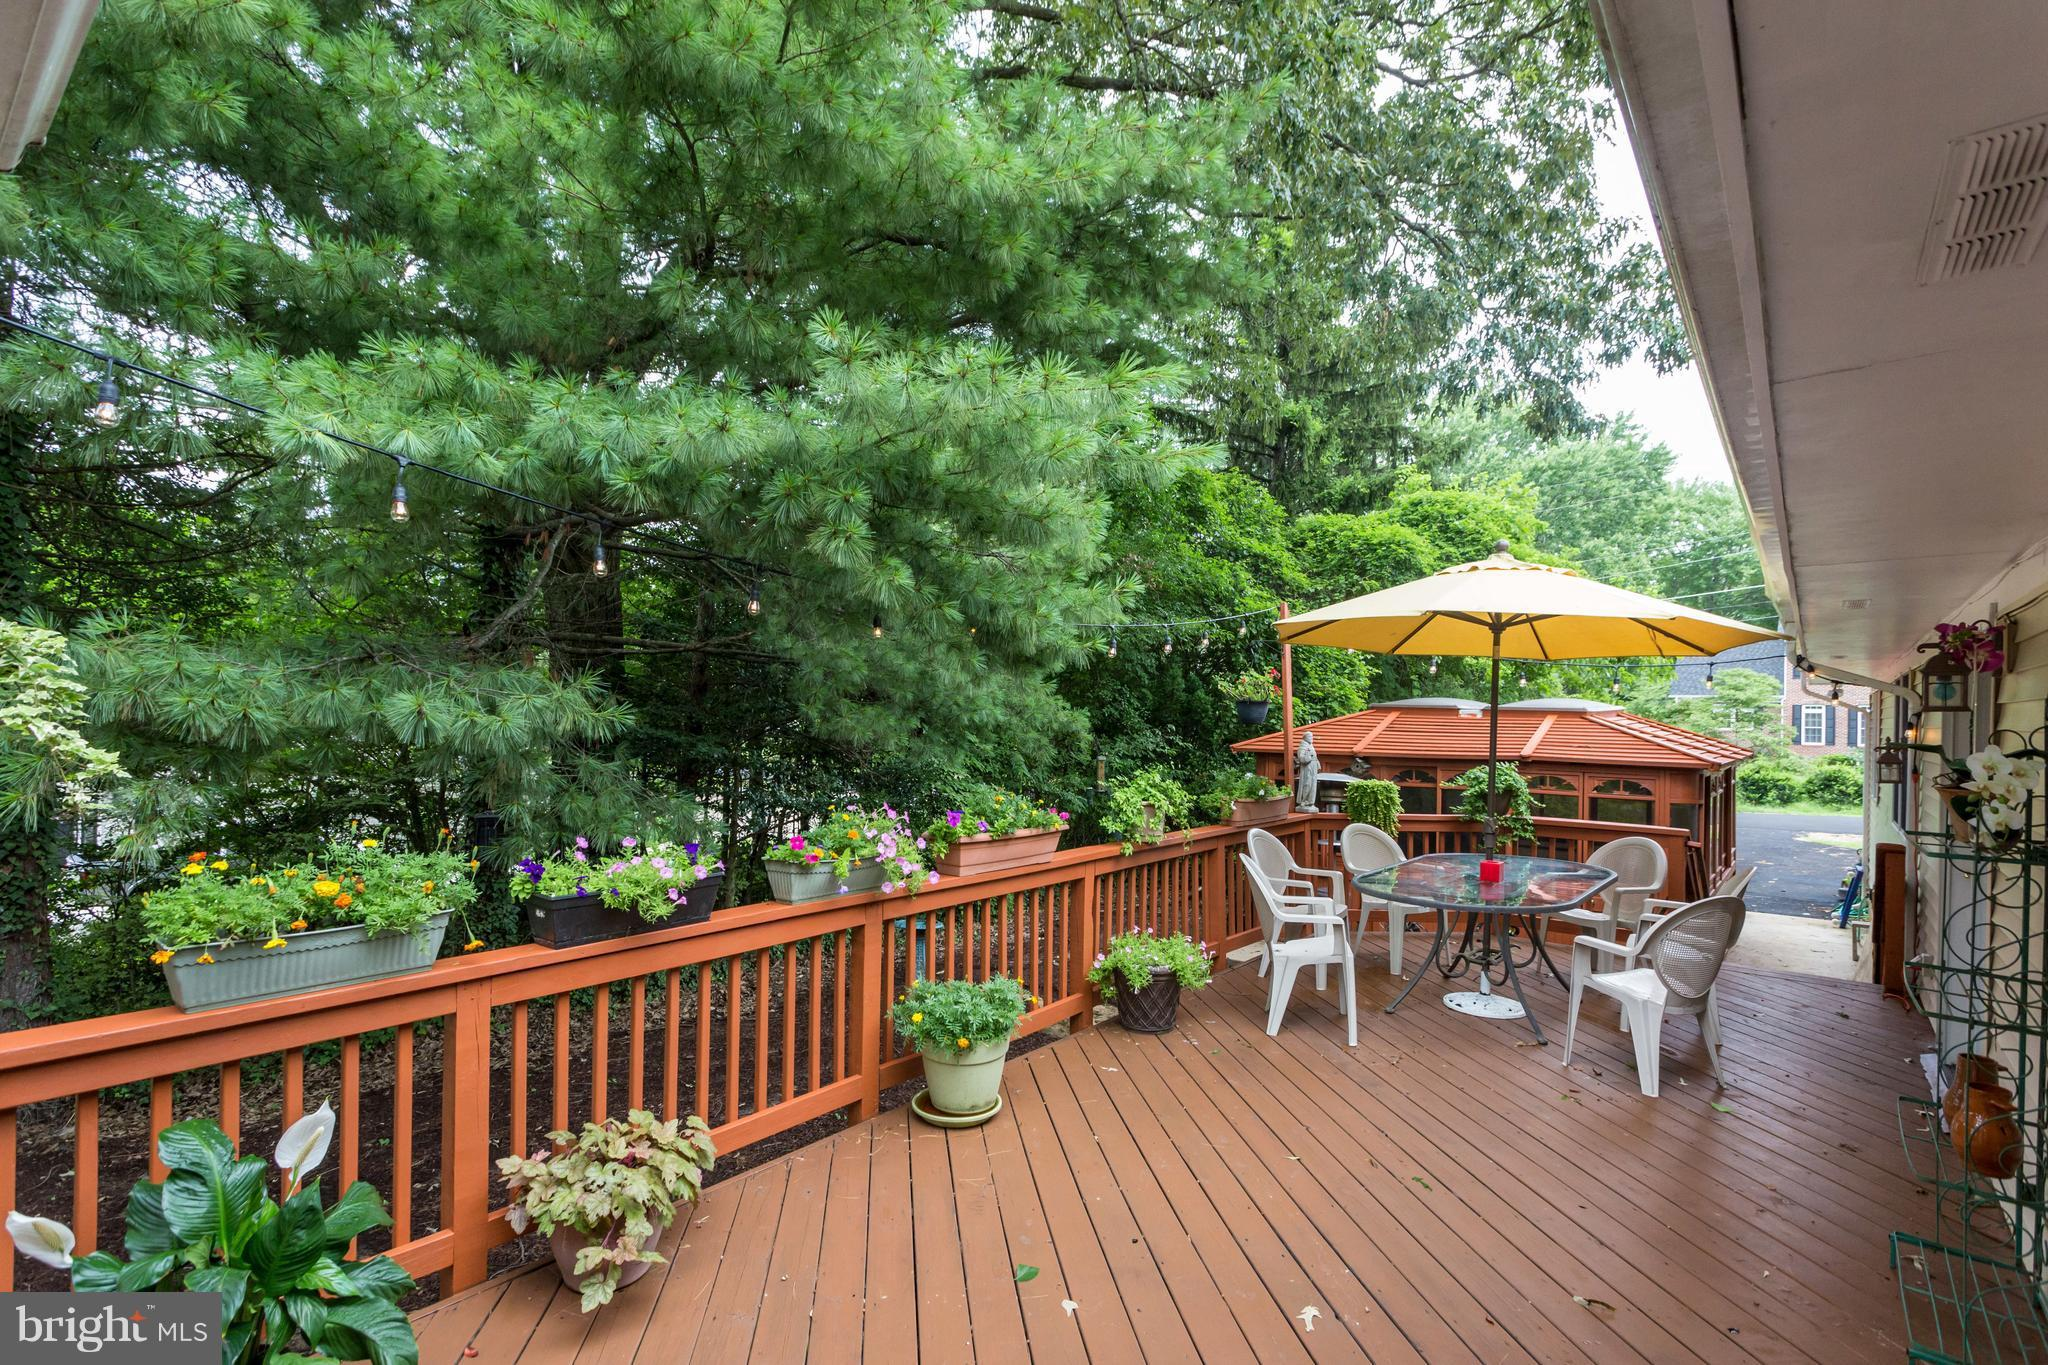 Price Improvement! Country living close in neighborhood! 4000 sq. ft. Huge kitchen center island w/2 commercial warming drawers Thermador 6 burner+grill stove 2 sinks & wall of cabinets. Great room w/sun room. Bring your longest table for the dining room. Gazebo w/ hot tub off deck. Rec room w/bar.Storage. New Baths Big MBR w/walk-in closet. All in a great location near 95 & TJ High. Bring Offers!